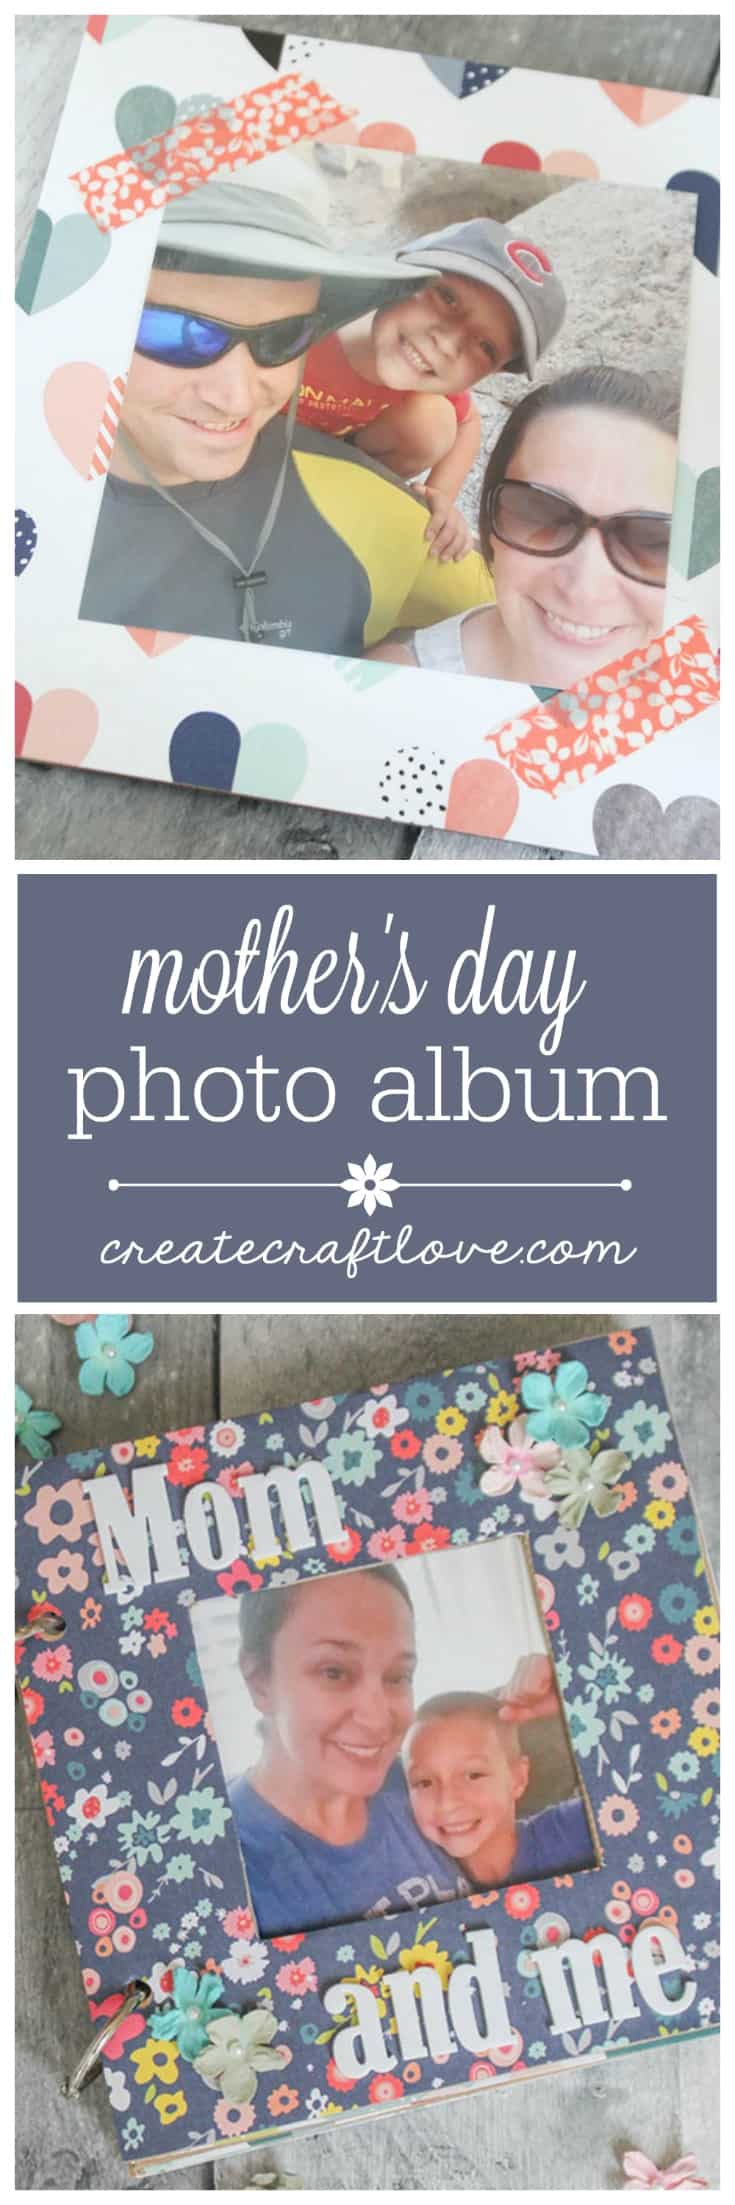 Melt Mom's heart with this DIY Mothers Day Photo Album!  We created free printable questionnaire stickers to personalize each project!